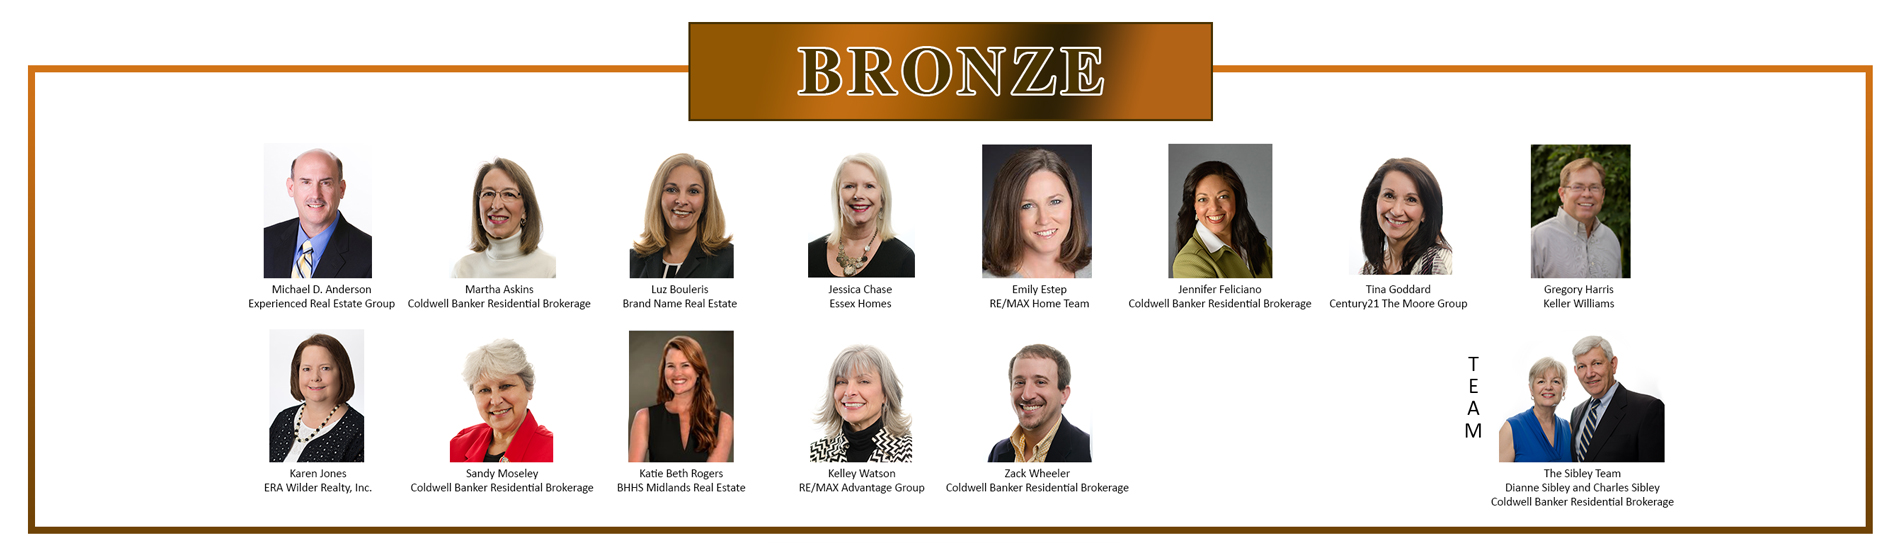 Bronze Residential Circle of Excellence Winners - 2016